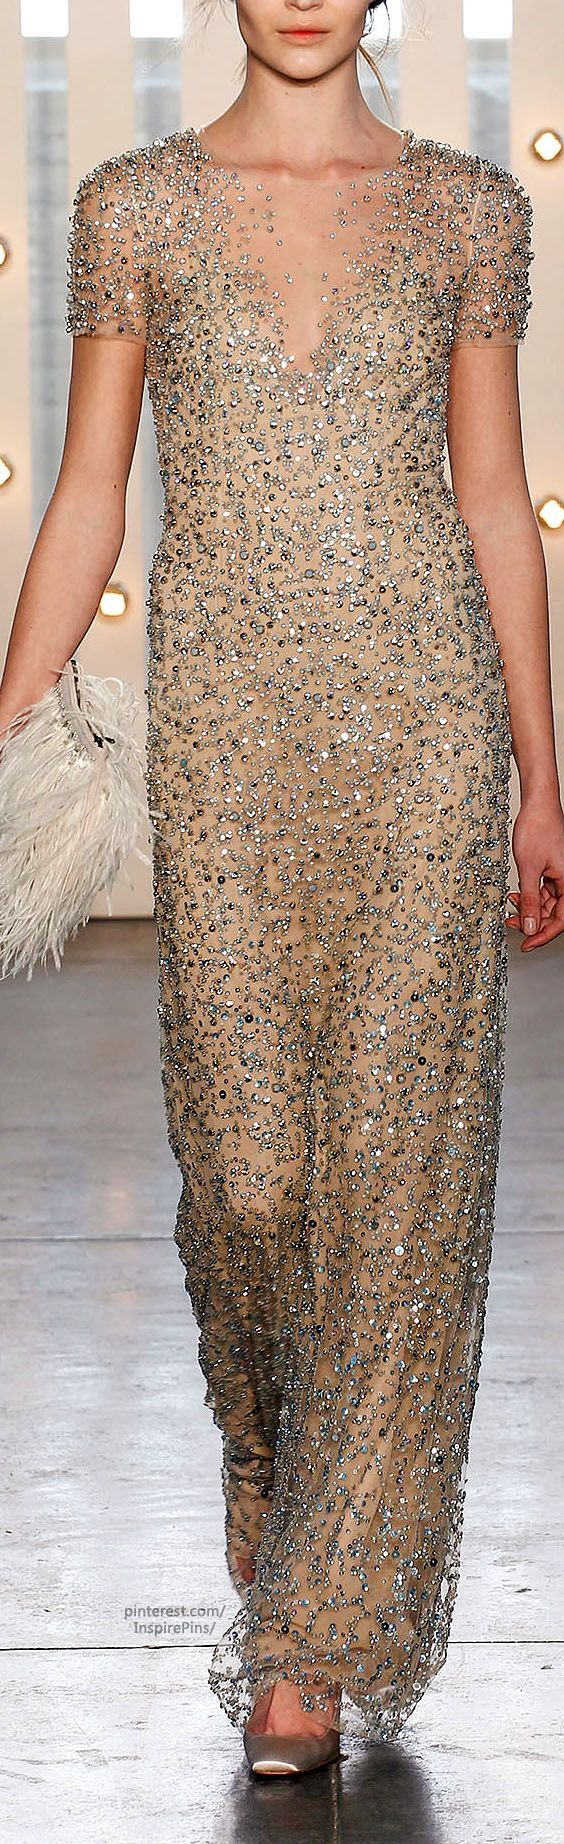 Fall 2014 Ready-to-Wear Jenny Packham #PurelyInspiration #NYFW.stunning bead work.